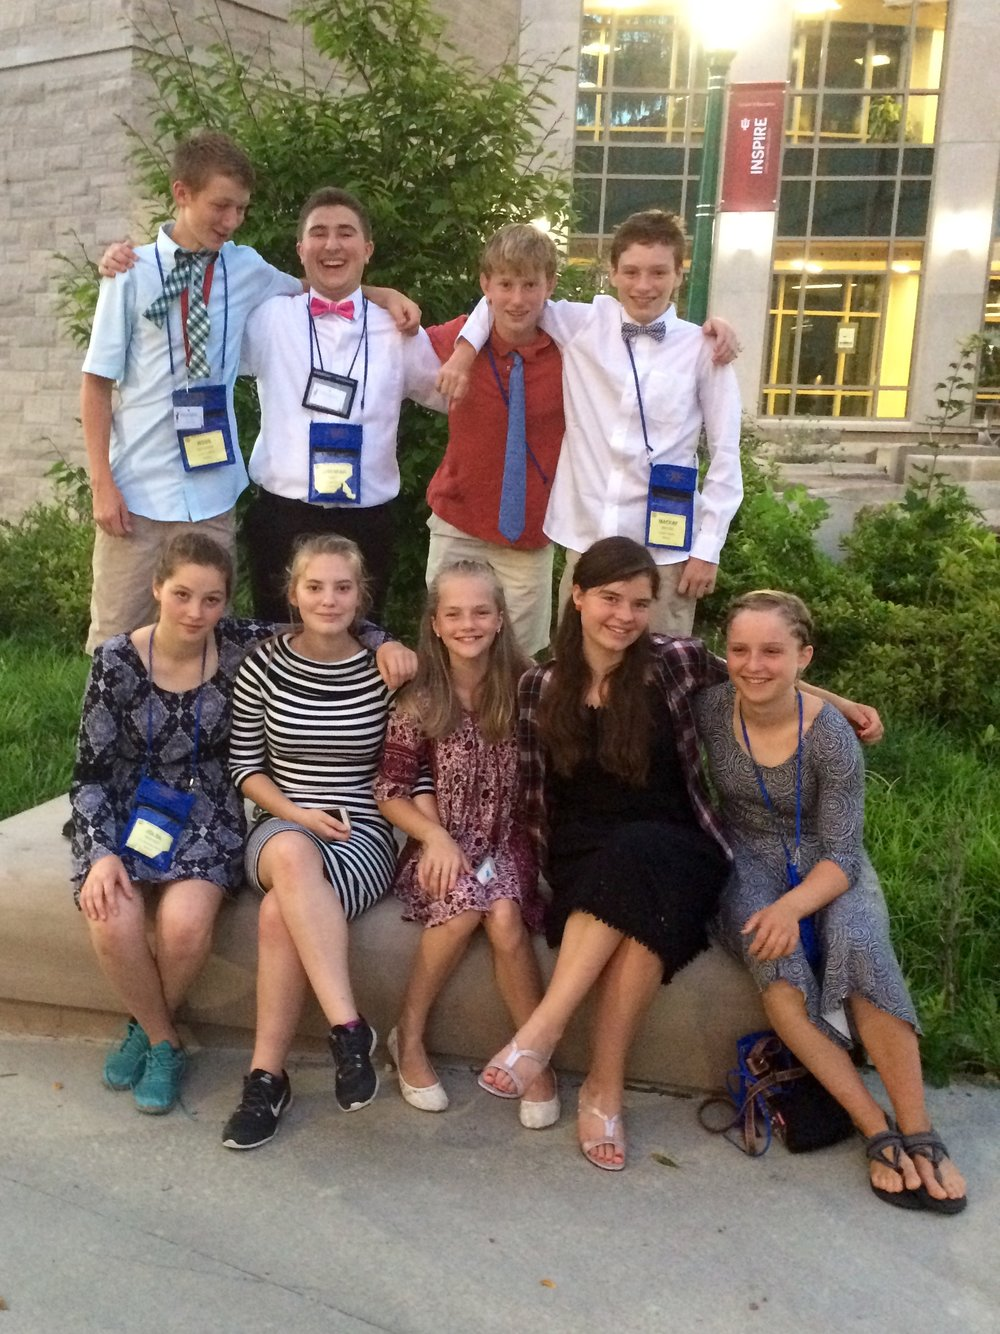 The Vermont delegation at the NJCL National Convention: Front row left to right: Joleil Whitney, Ileah Arcand, Katie Lyon, Kate O'Farrell, Waverly Griffin Back row left to right: Rossen Goodwin, Jeremiah Aiken, Holden Larsen, MacKay Breton